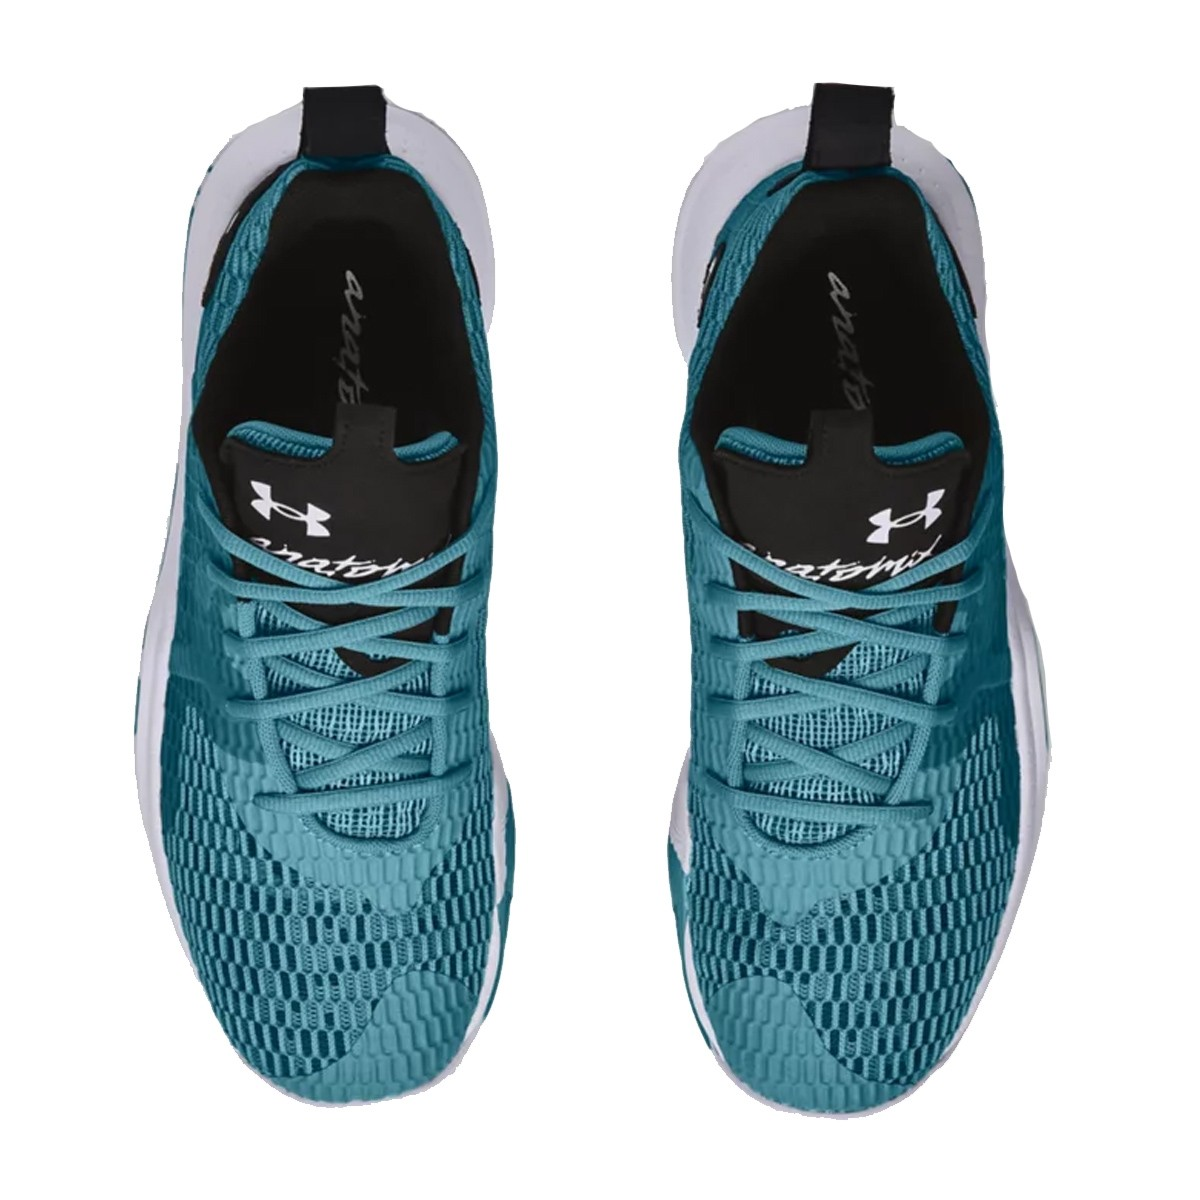 Under Armour Spawn 3 'Jade Turquoise'-3023738-301